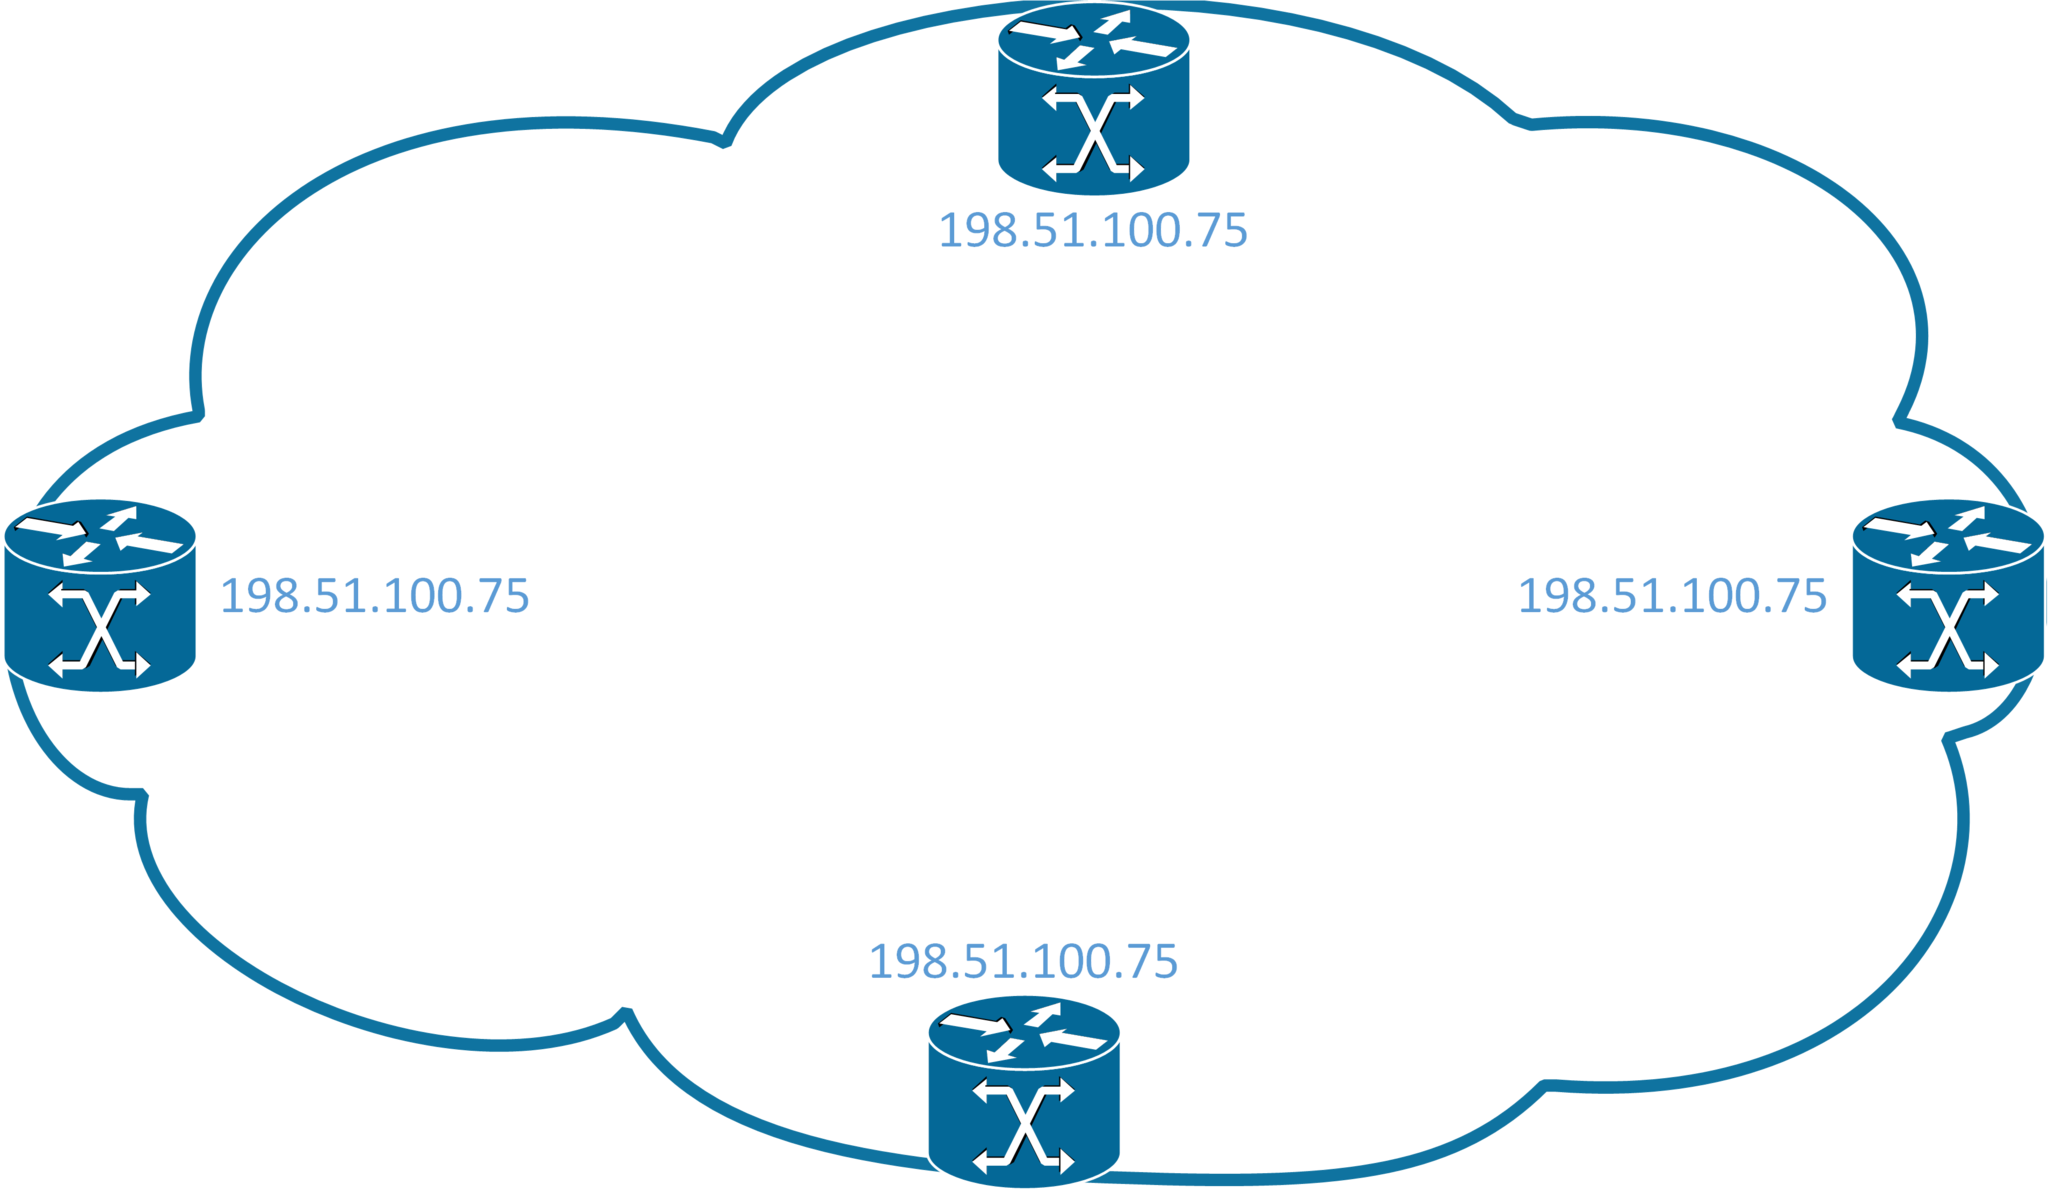 Anycast Illustration - 4 routers with the same IP